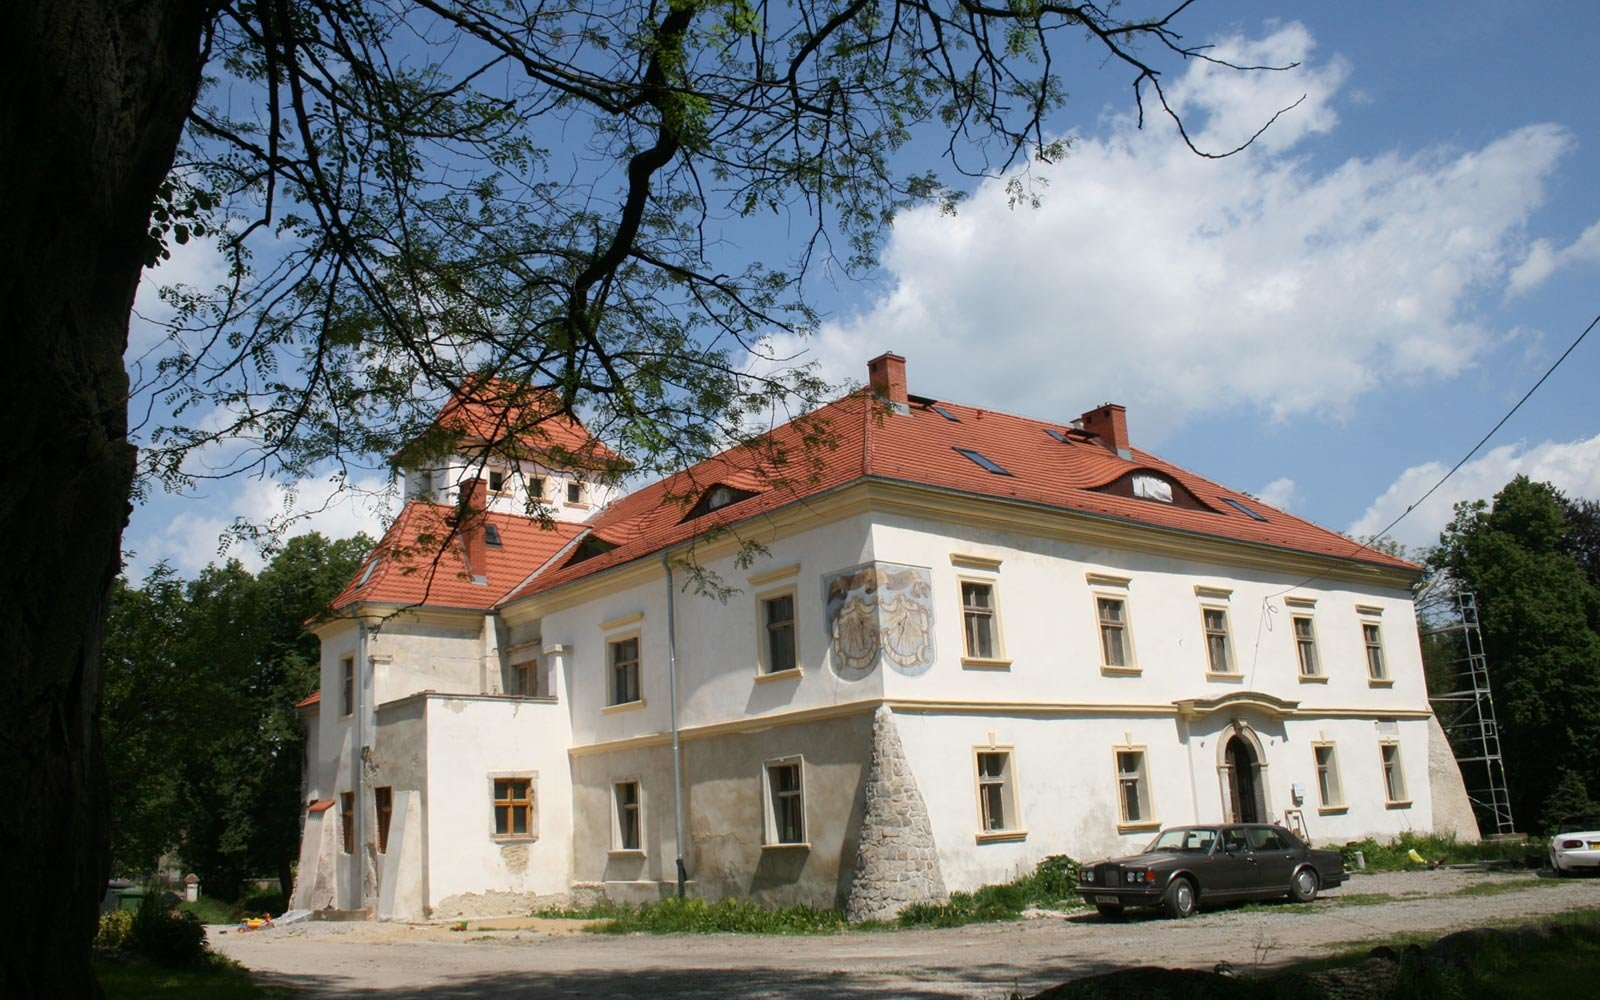 Otmuchow, Prince Bishop Wroclaw Palace